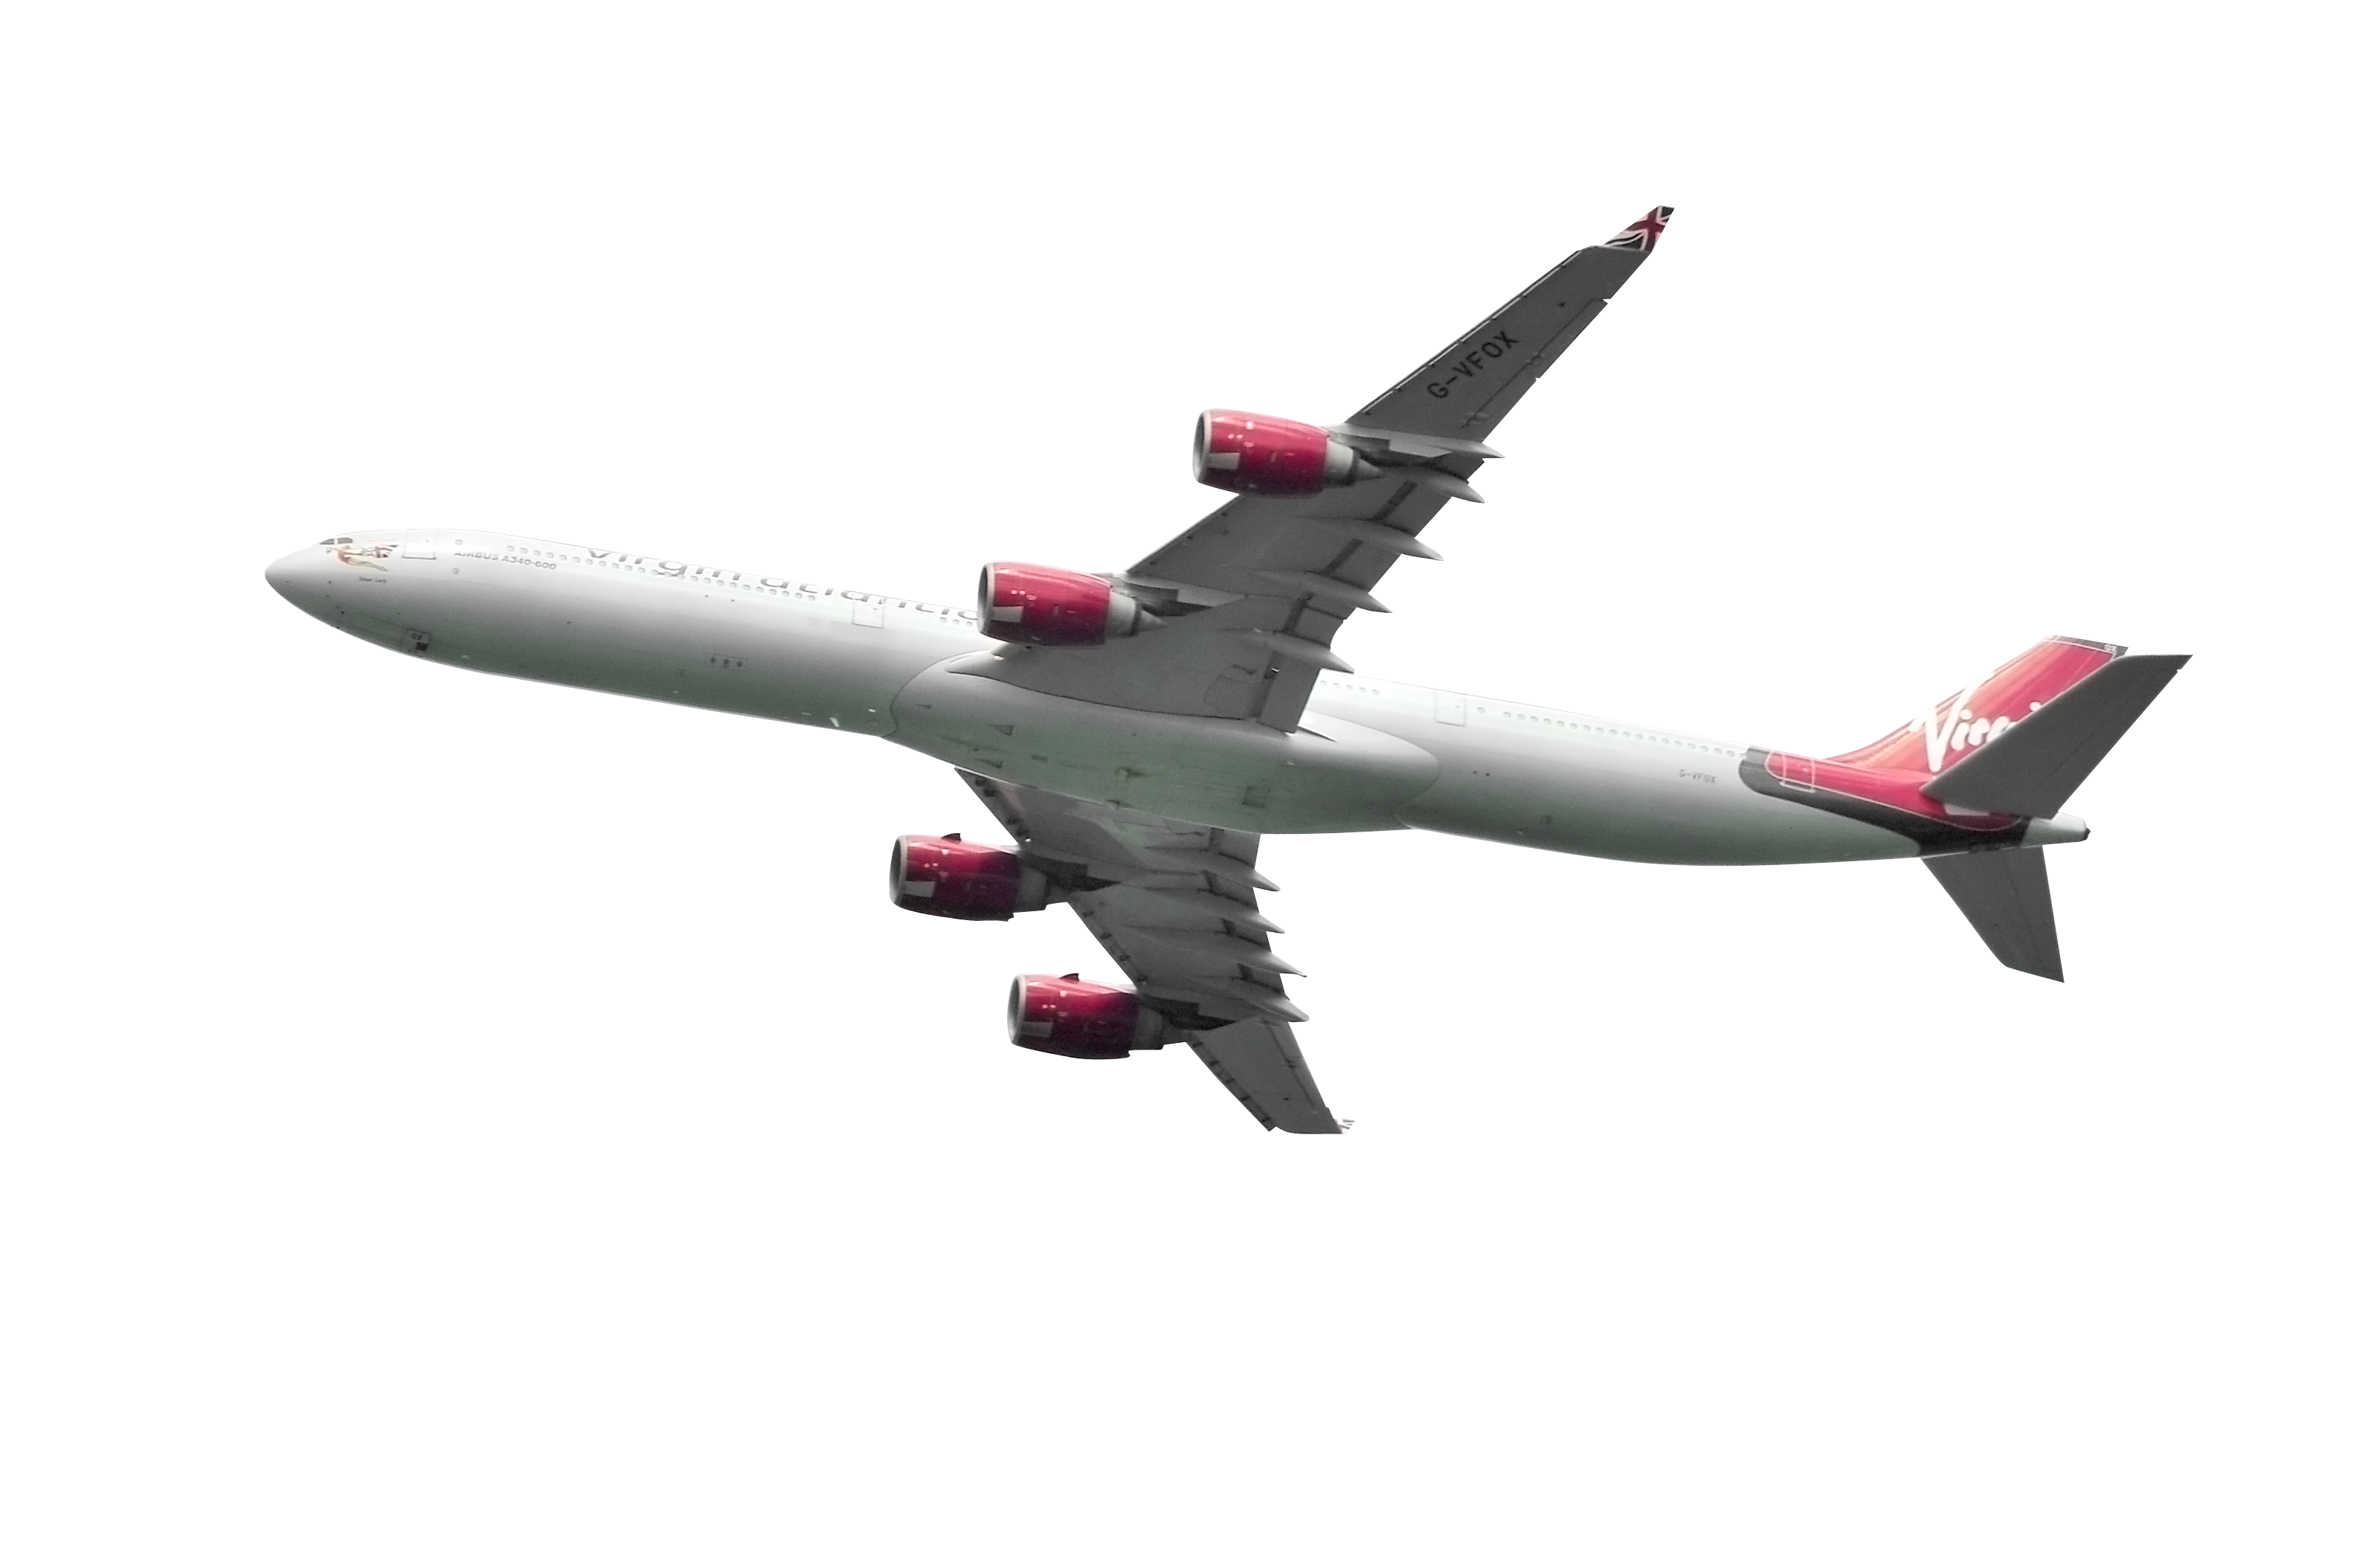 Planes png images free download plane png photo for Airplane plans